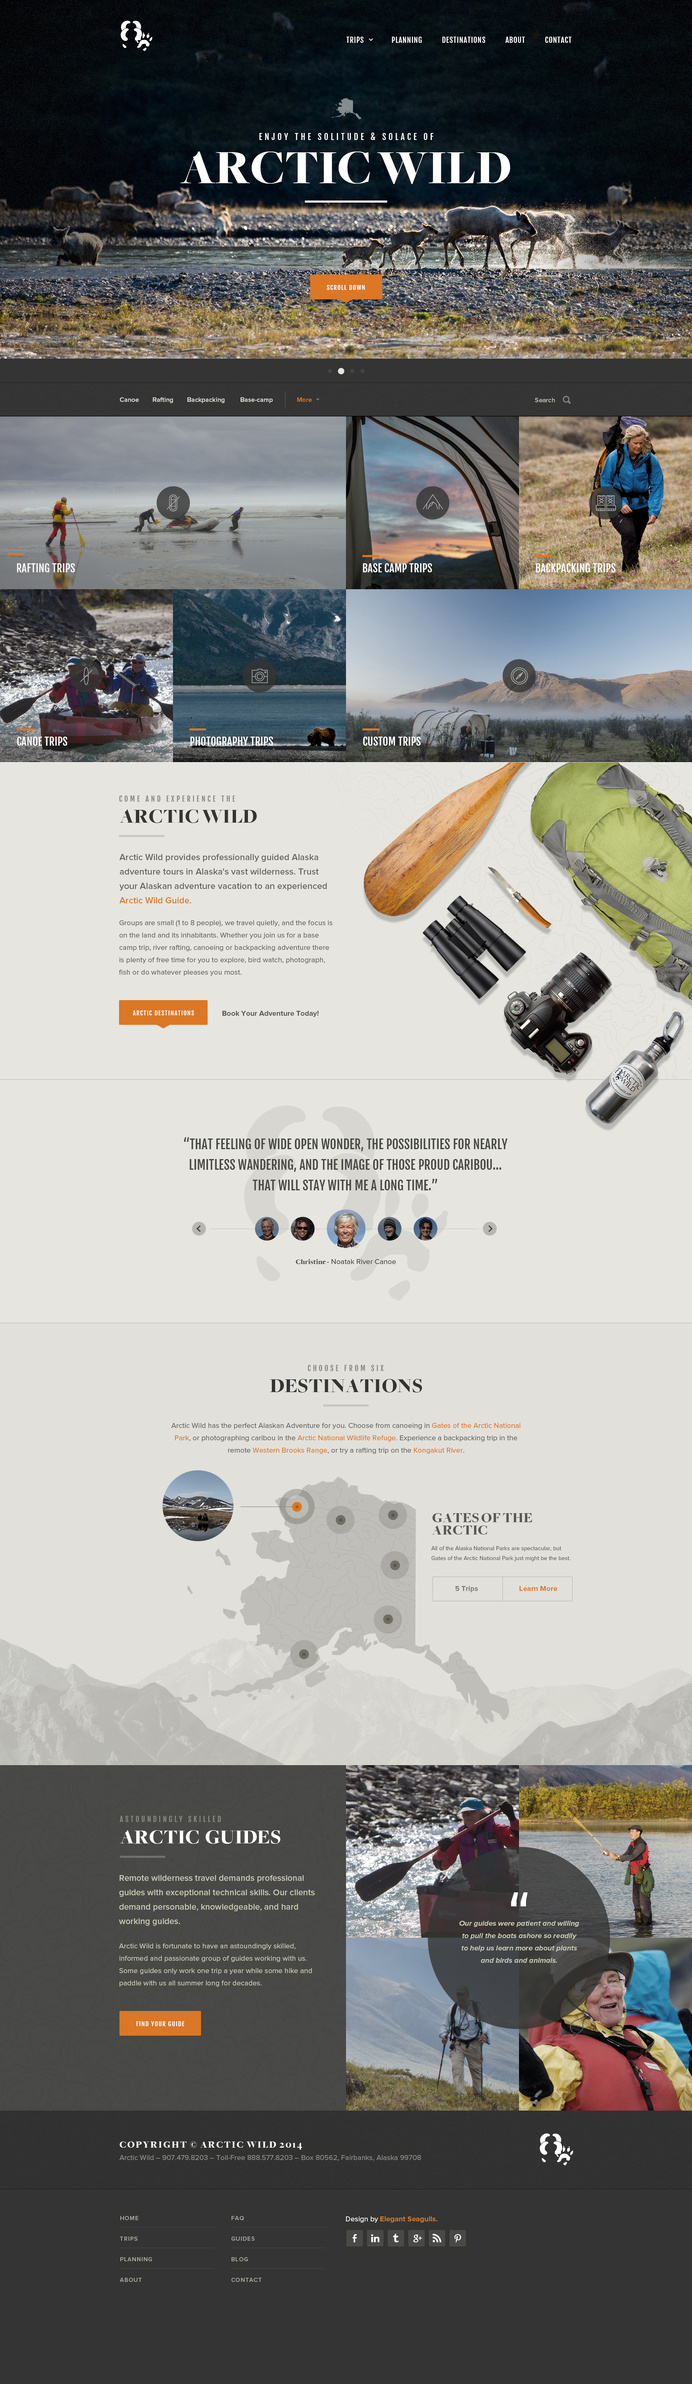 Arctic WIld by Elegant Seagulls #webdesign #website #wide #explore